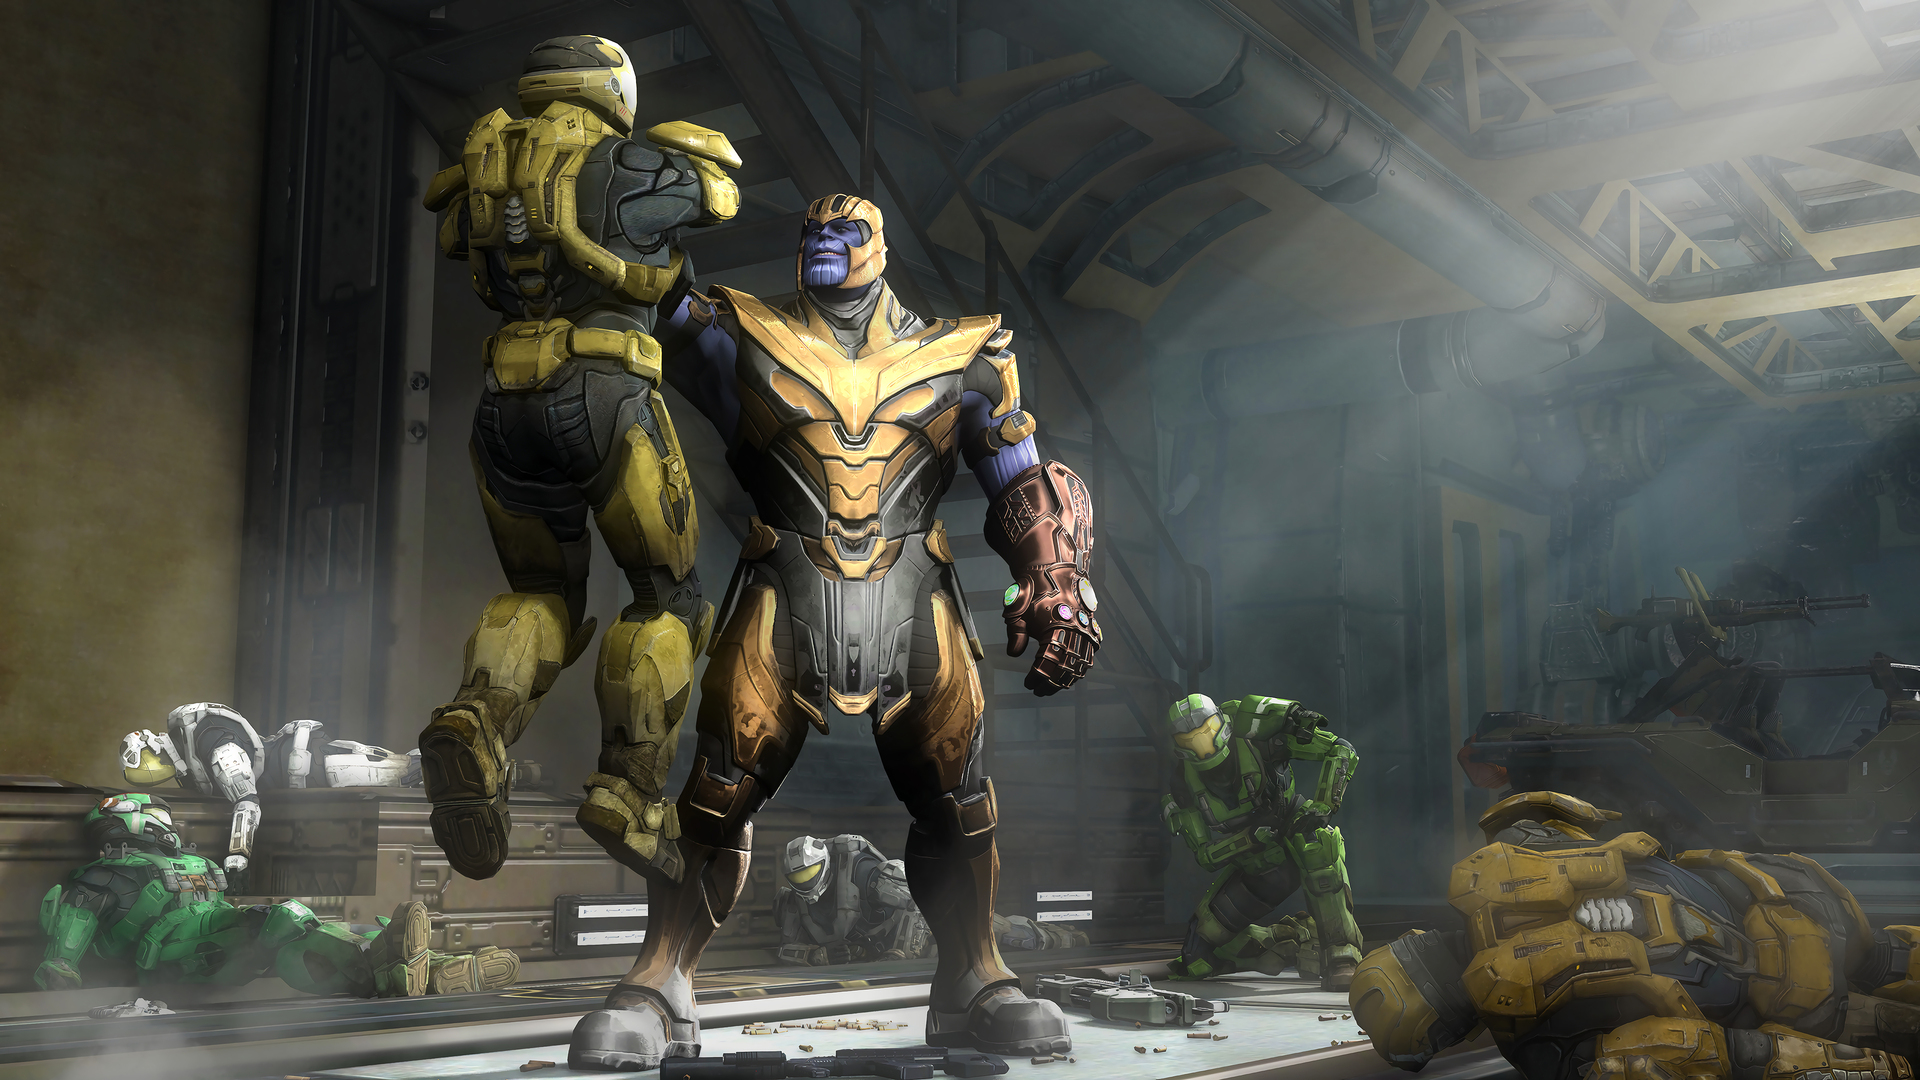 1920x1080 Marvel Thanos And Halo Spartan Laptop Full Hd